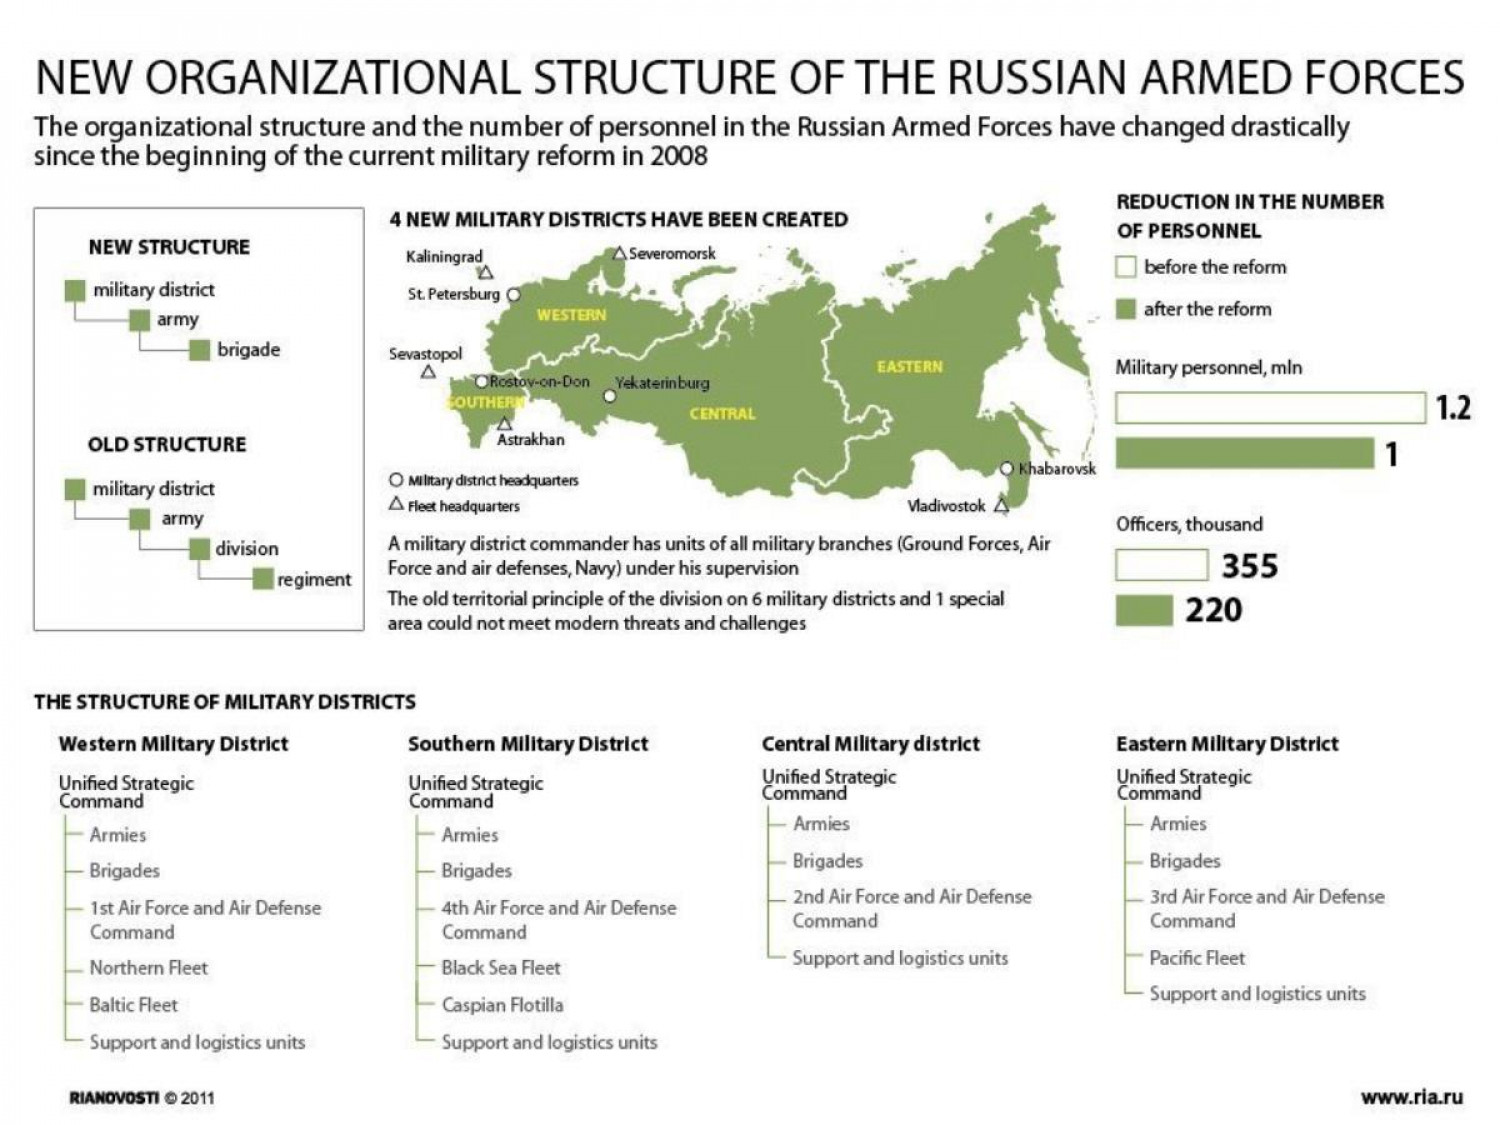 New Organizational Structure of the Russian Armed Forces Infographic